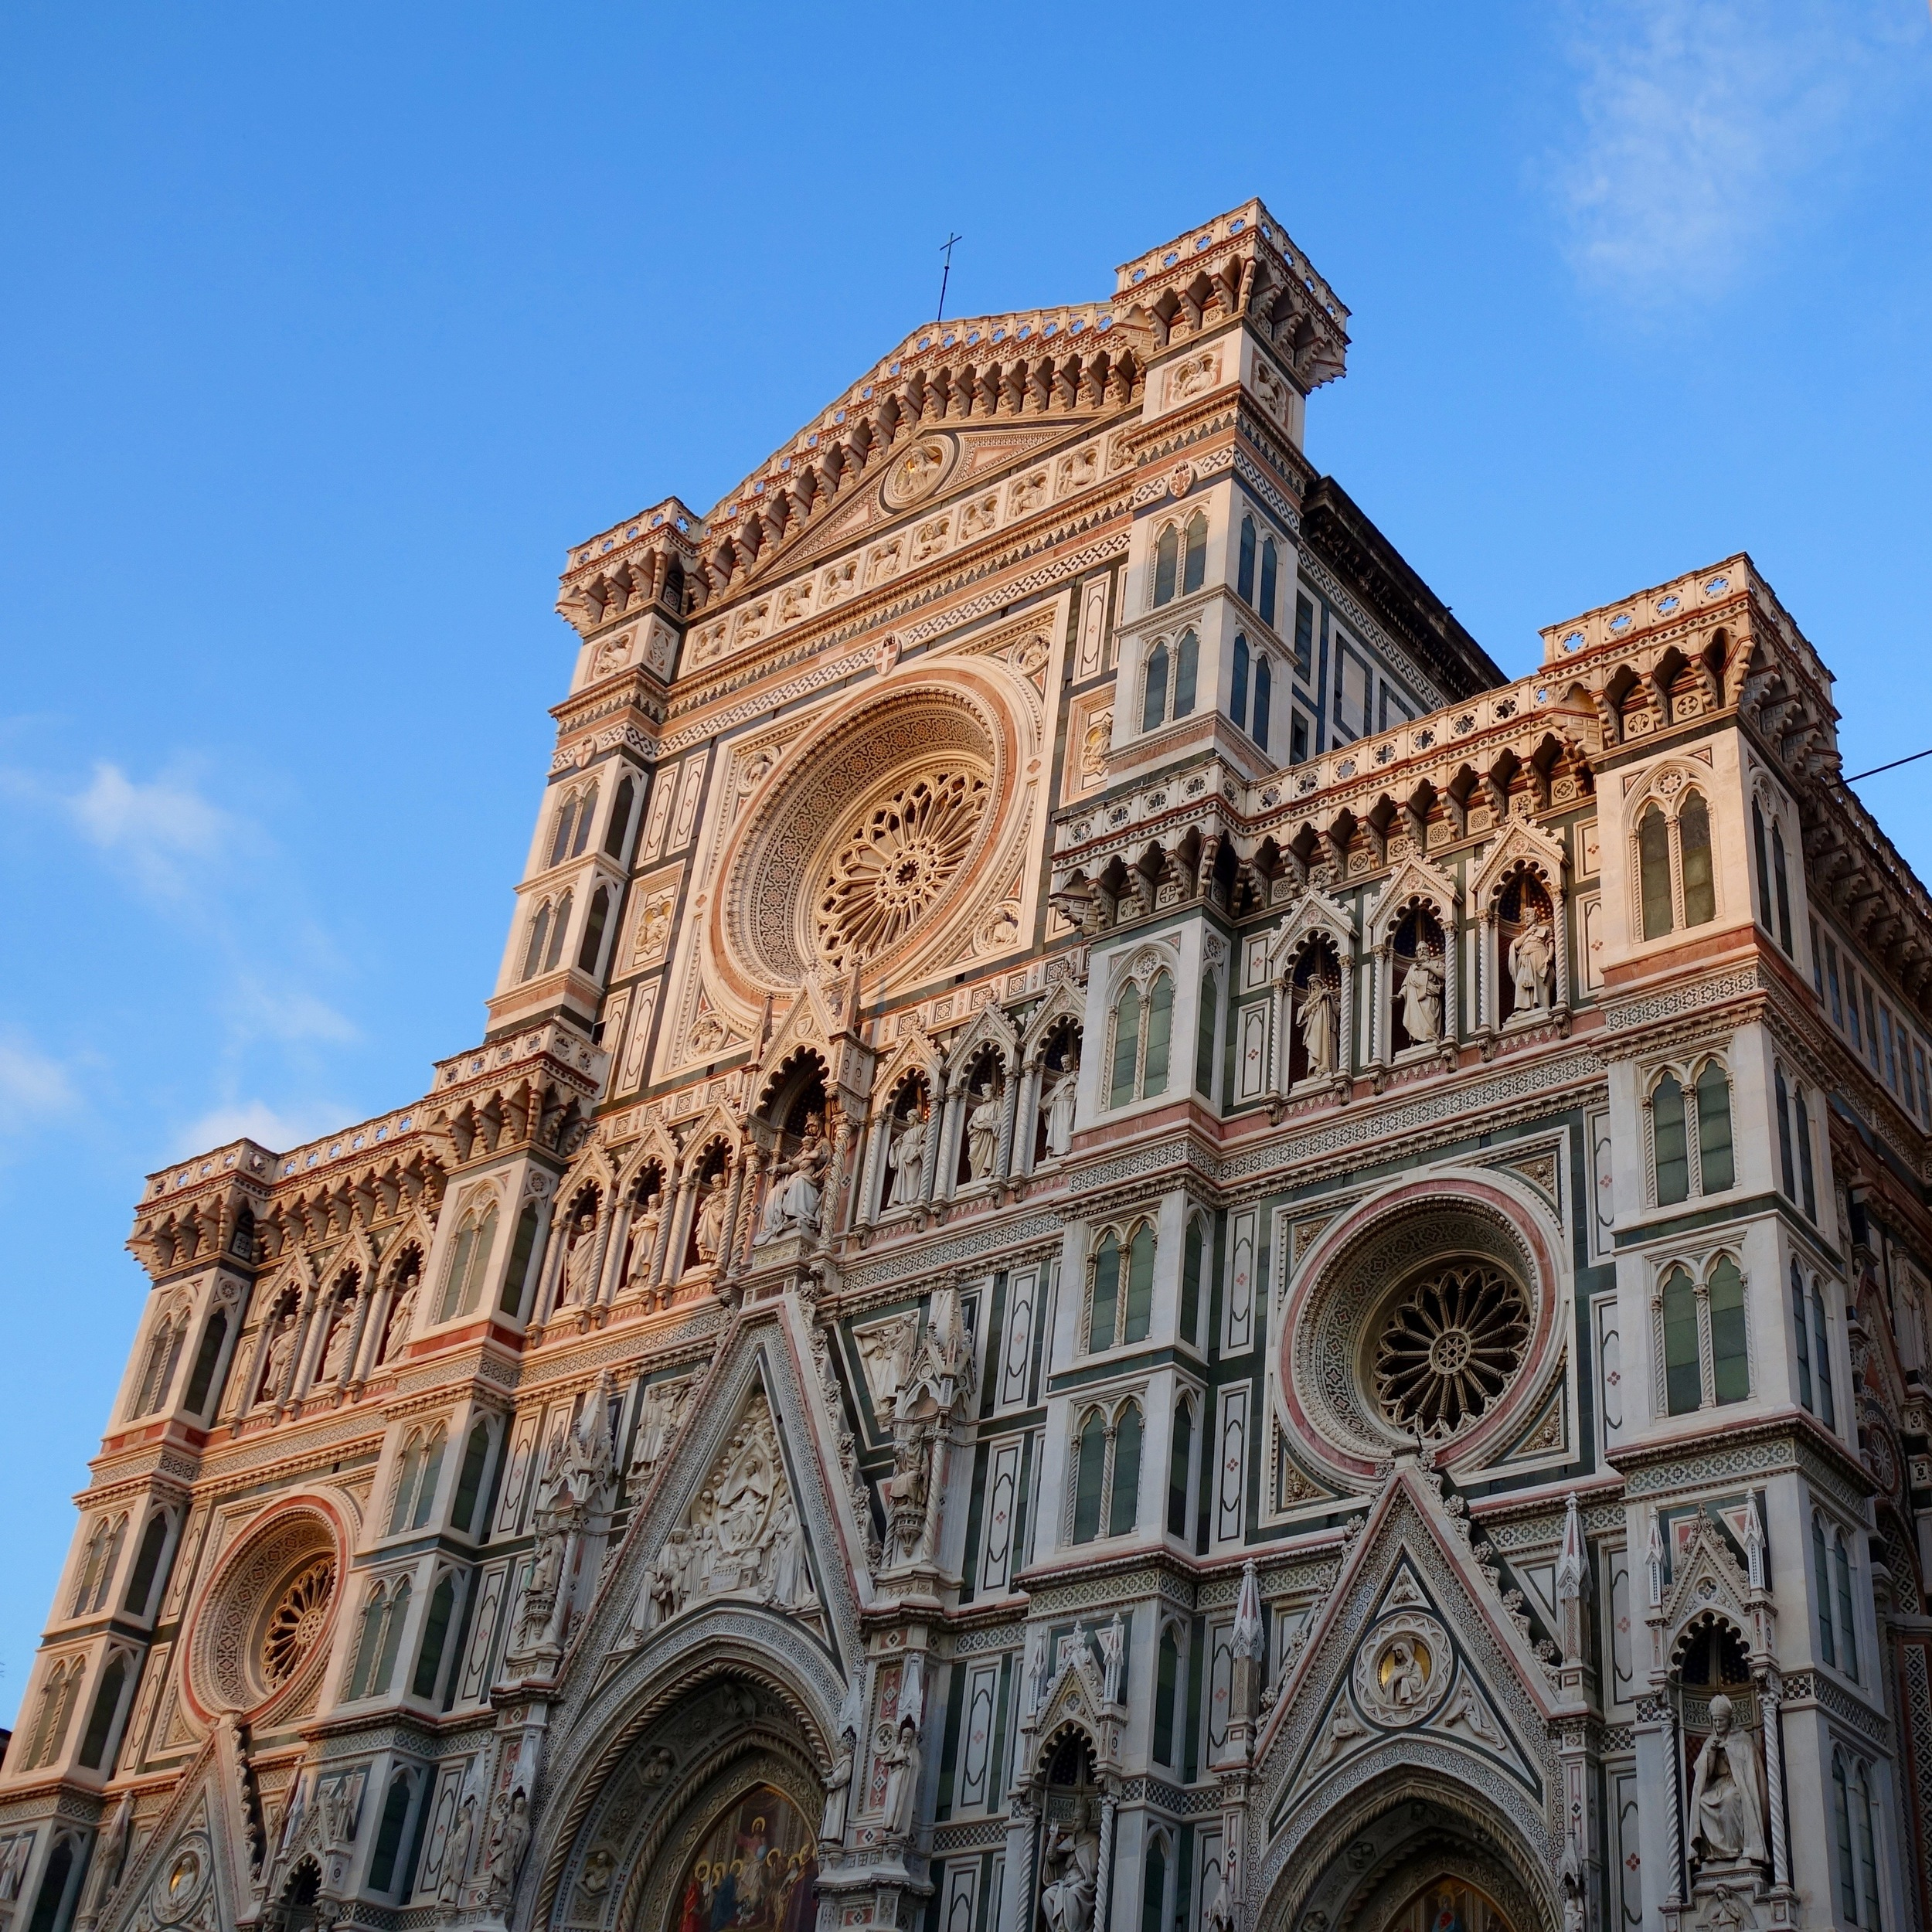 Santa Maria del Fiore at sunset